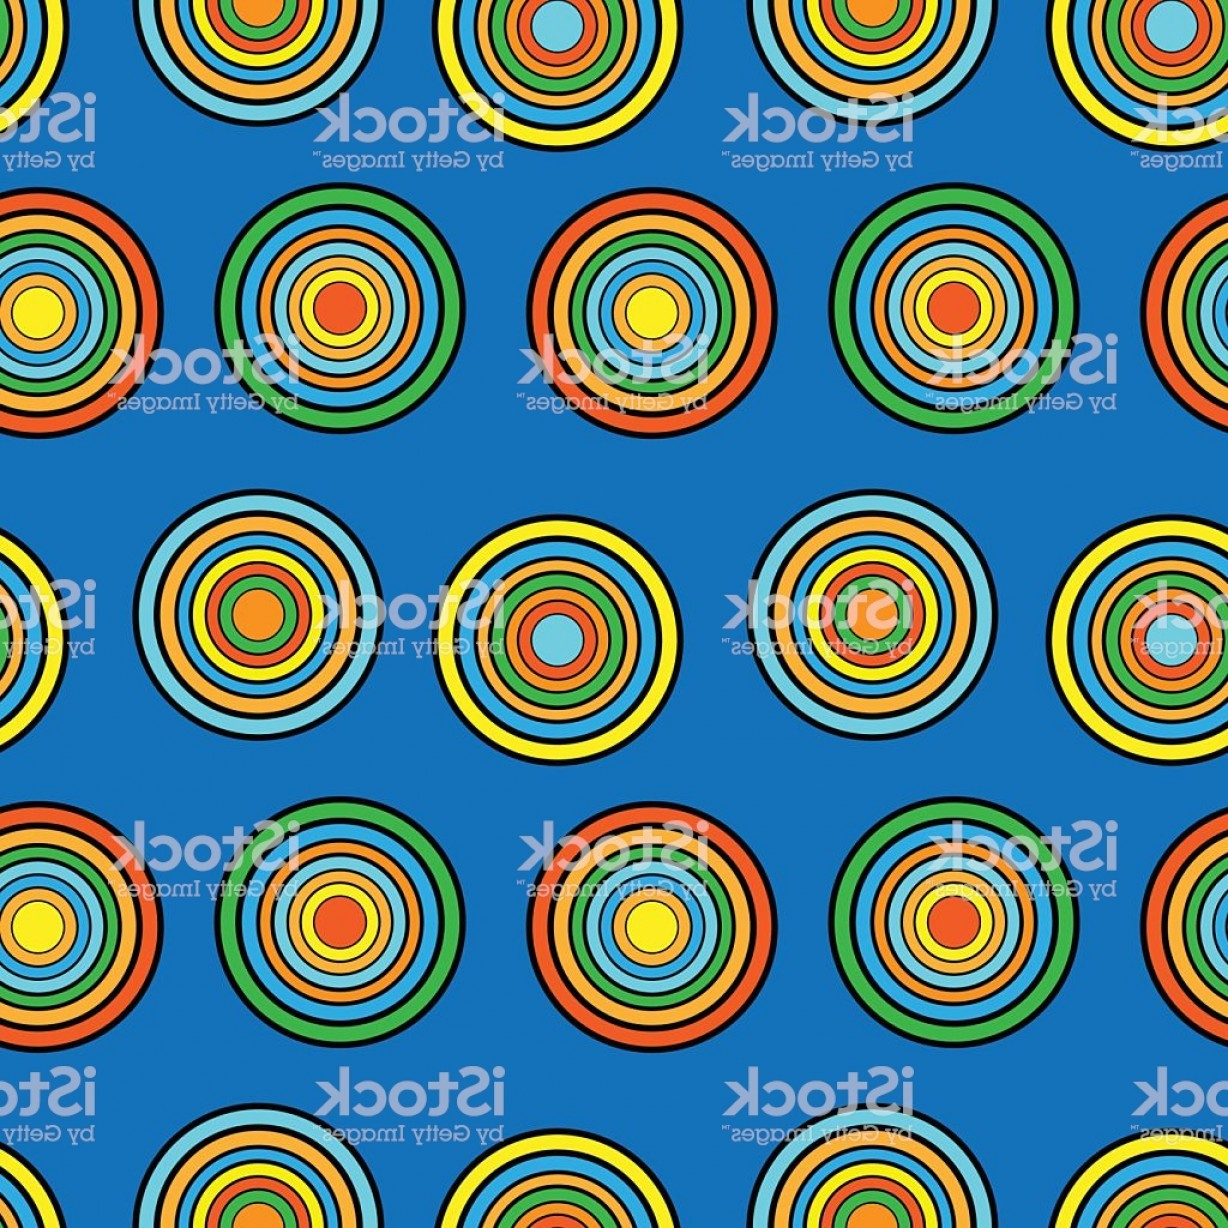 Blue And Orange Circle Vector: Blue And Orange Circles Seamless Vector Pattern Gm